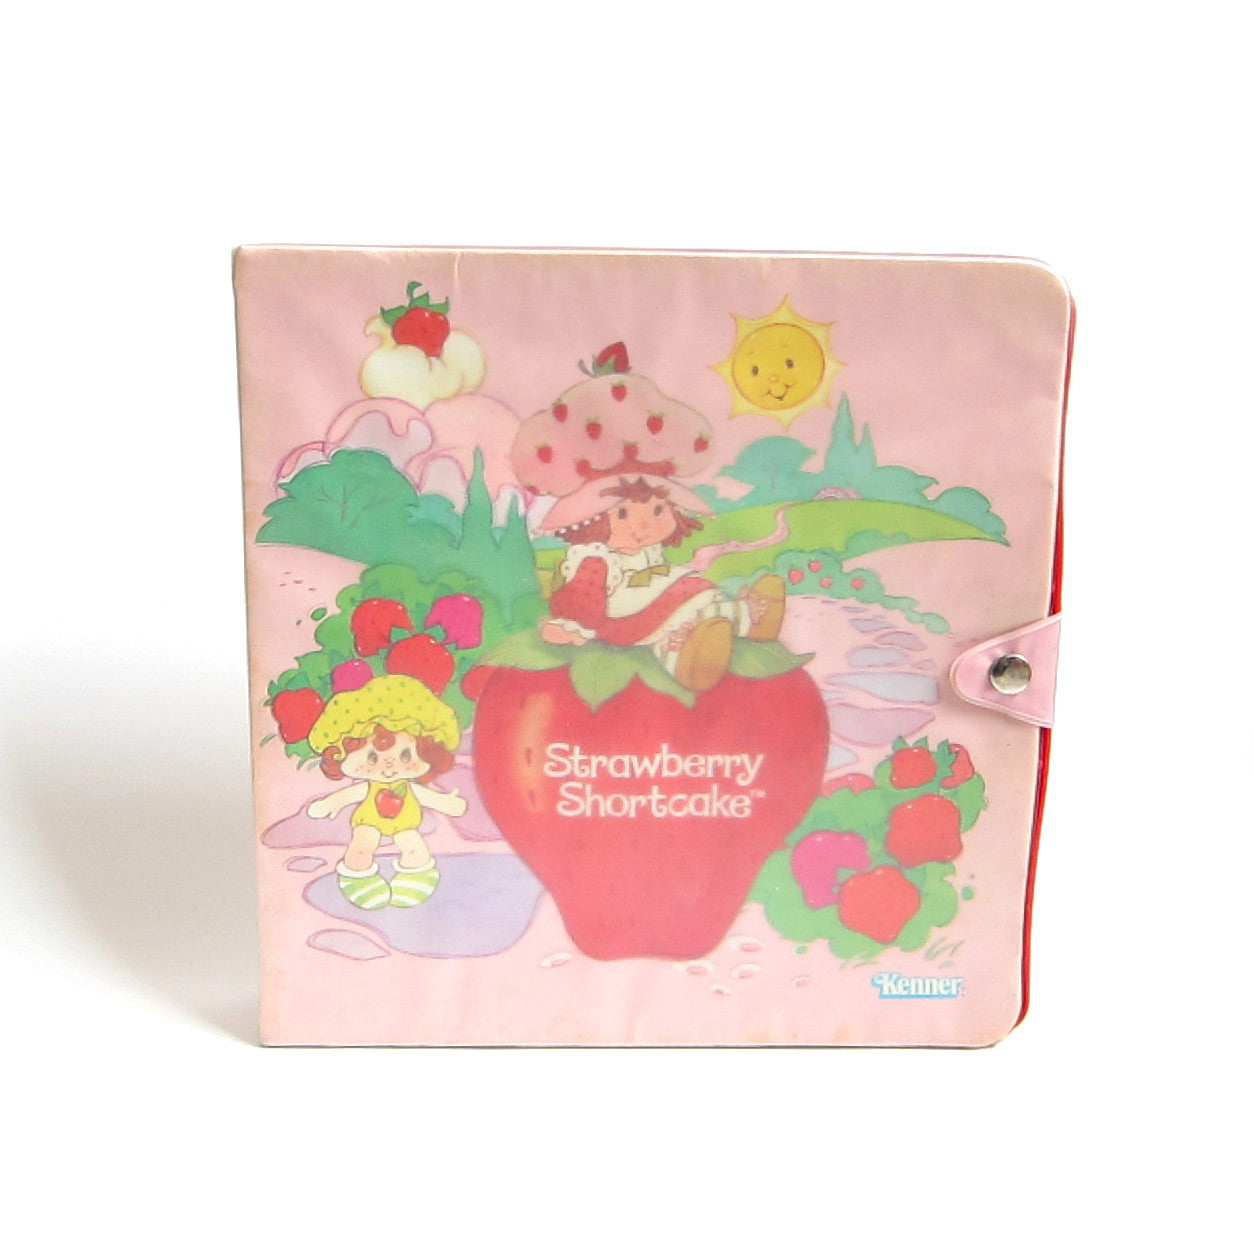 Strawberry Shortcake Storybook Play Case